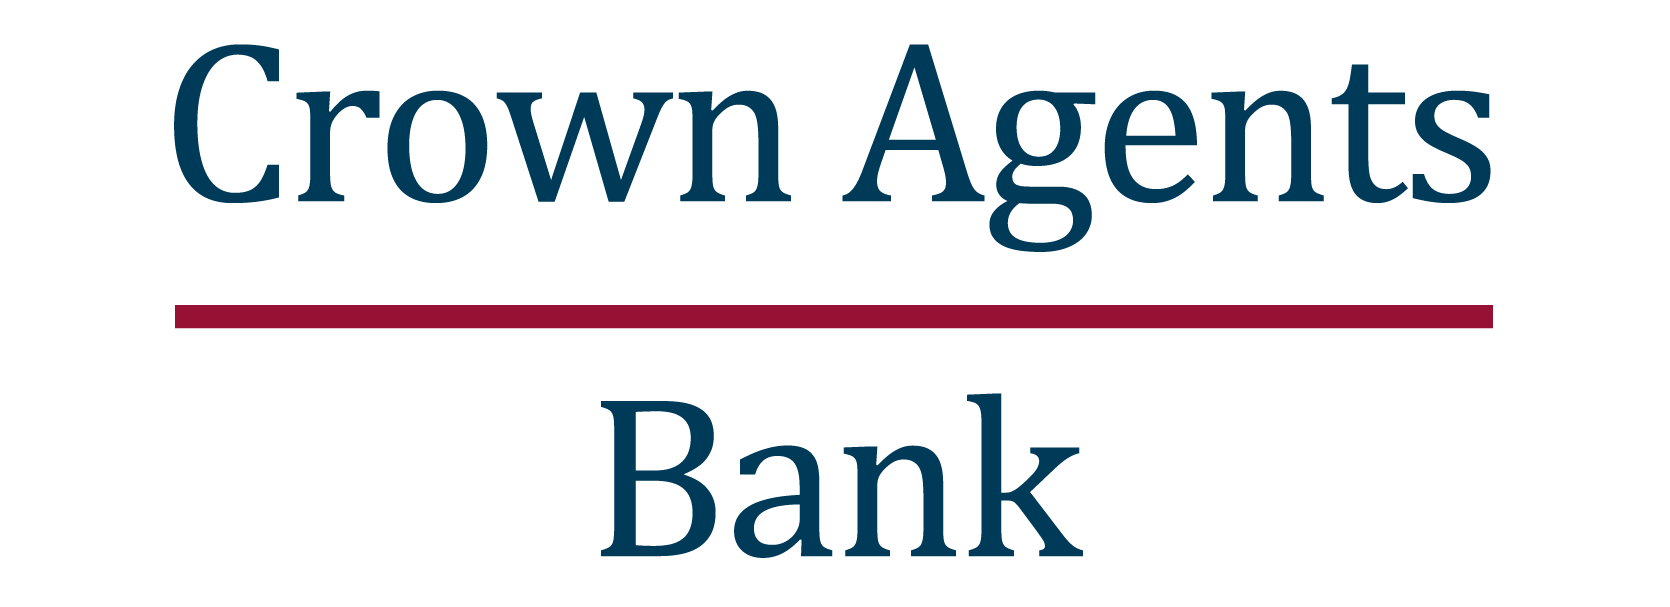 Crown Agents Bank and Investment Management